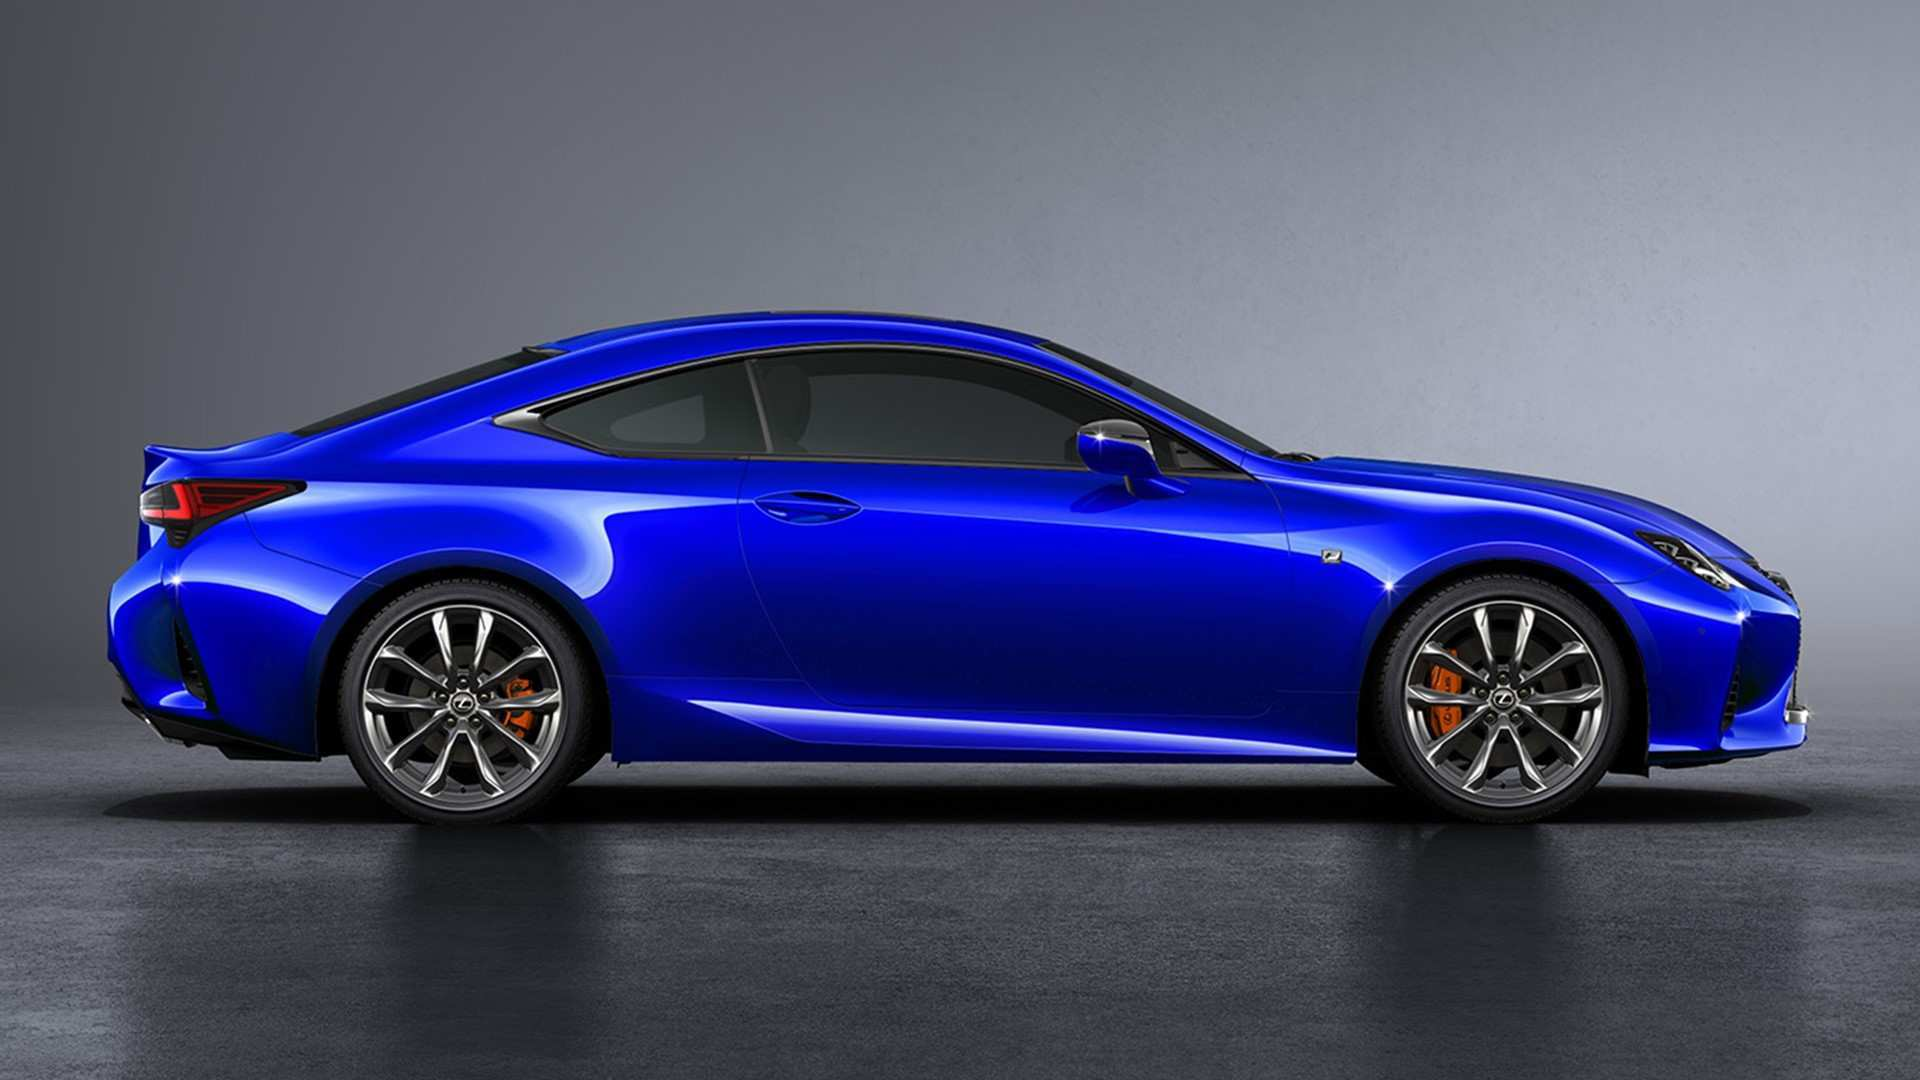 16 All New Price Of 2019 Lexus Reviews